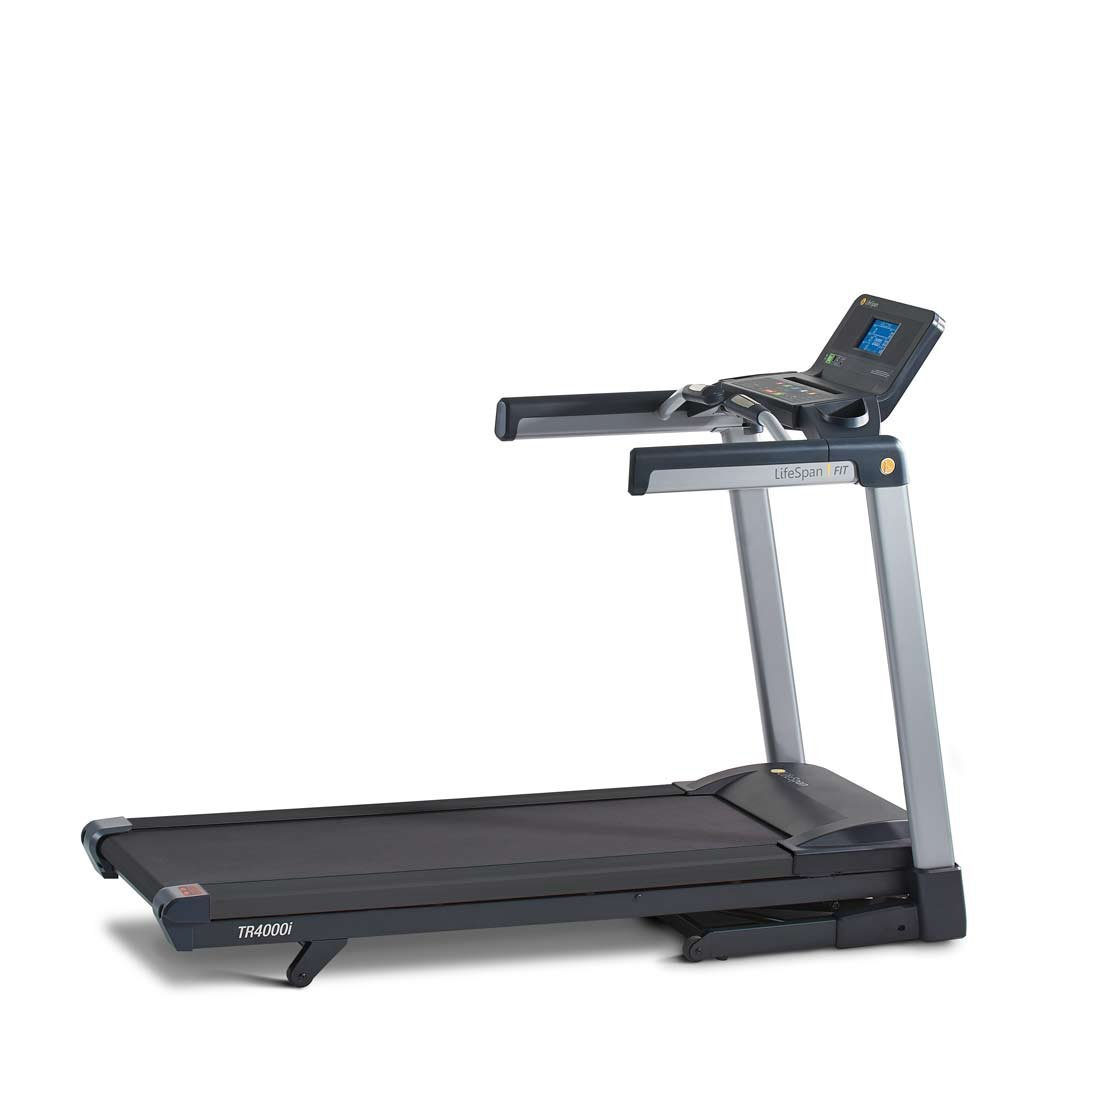 Top 3 Best Small Under Desk Treadmills 2019: LifeSpan TR4000i Treadmill Review 2018